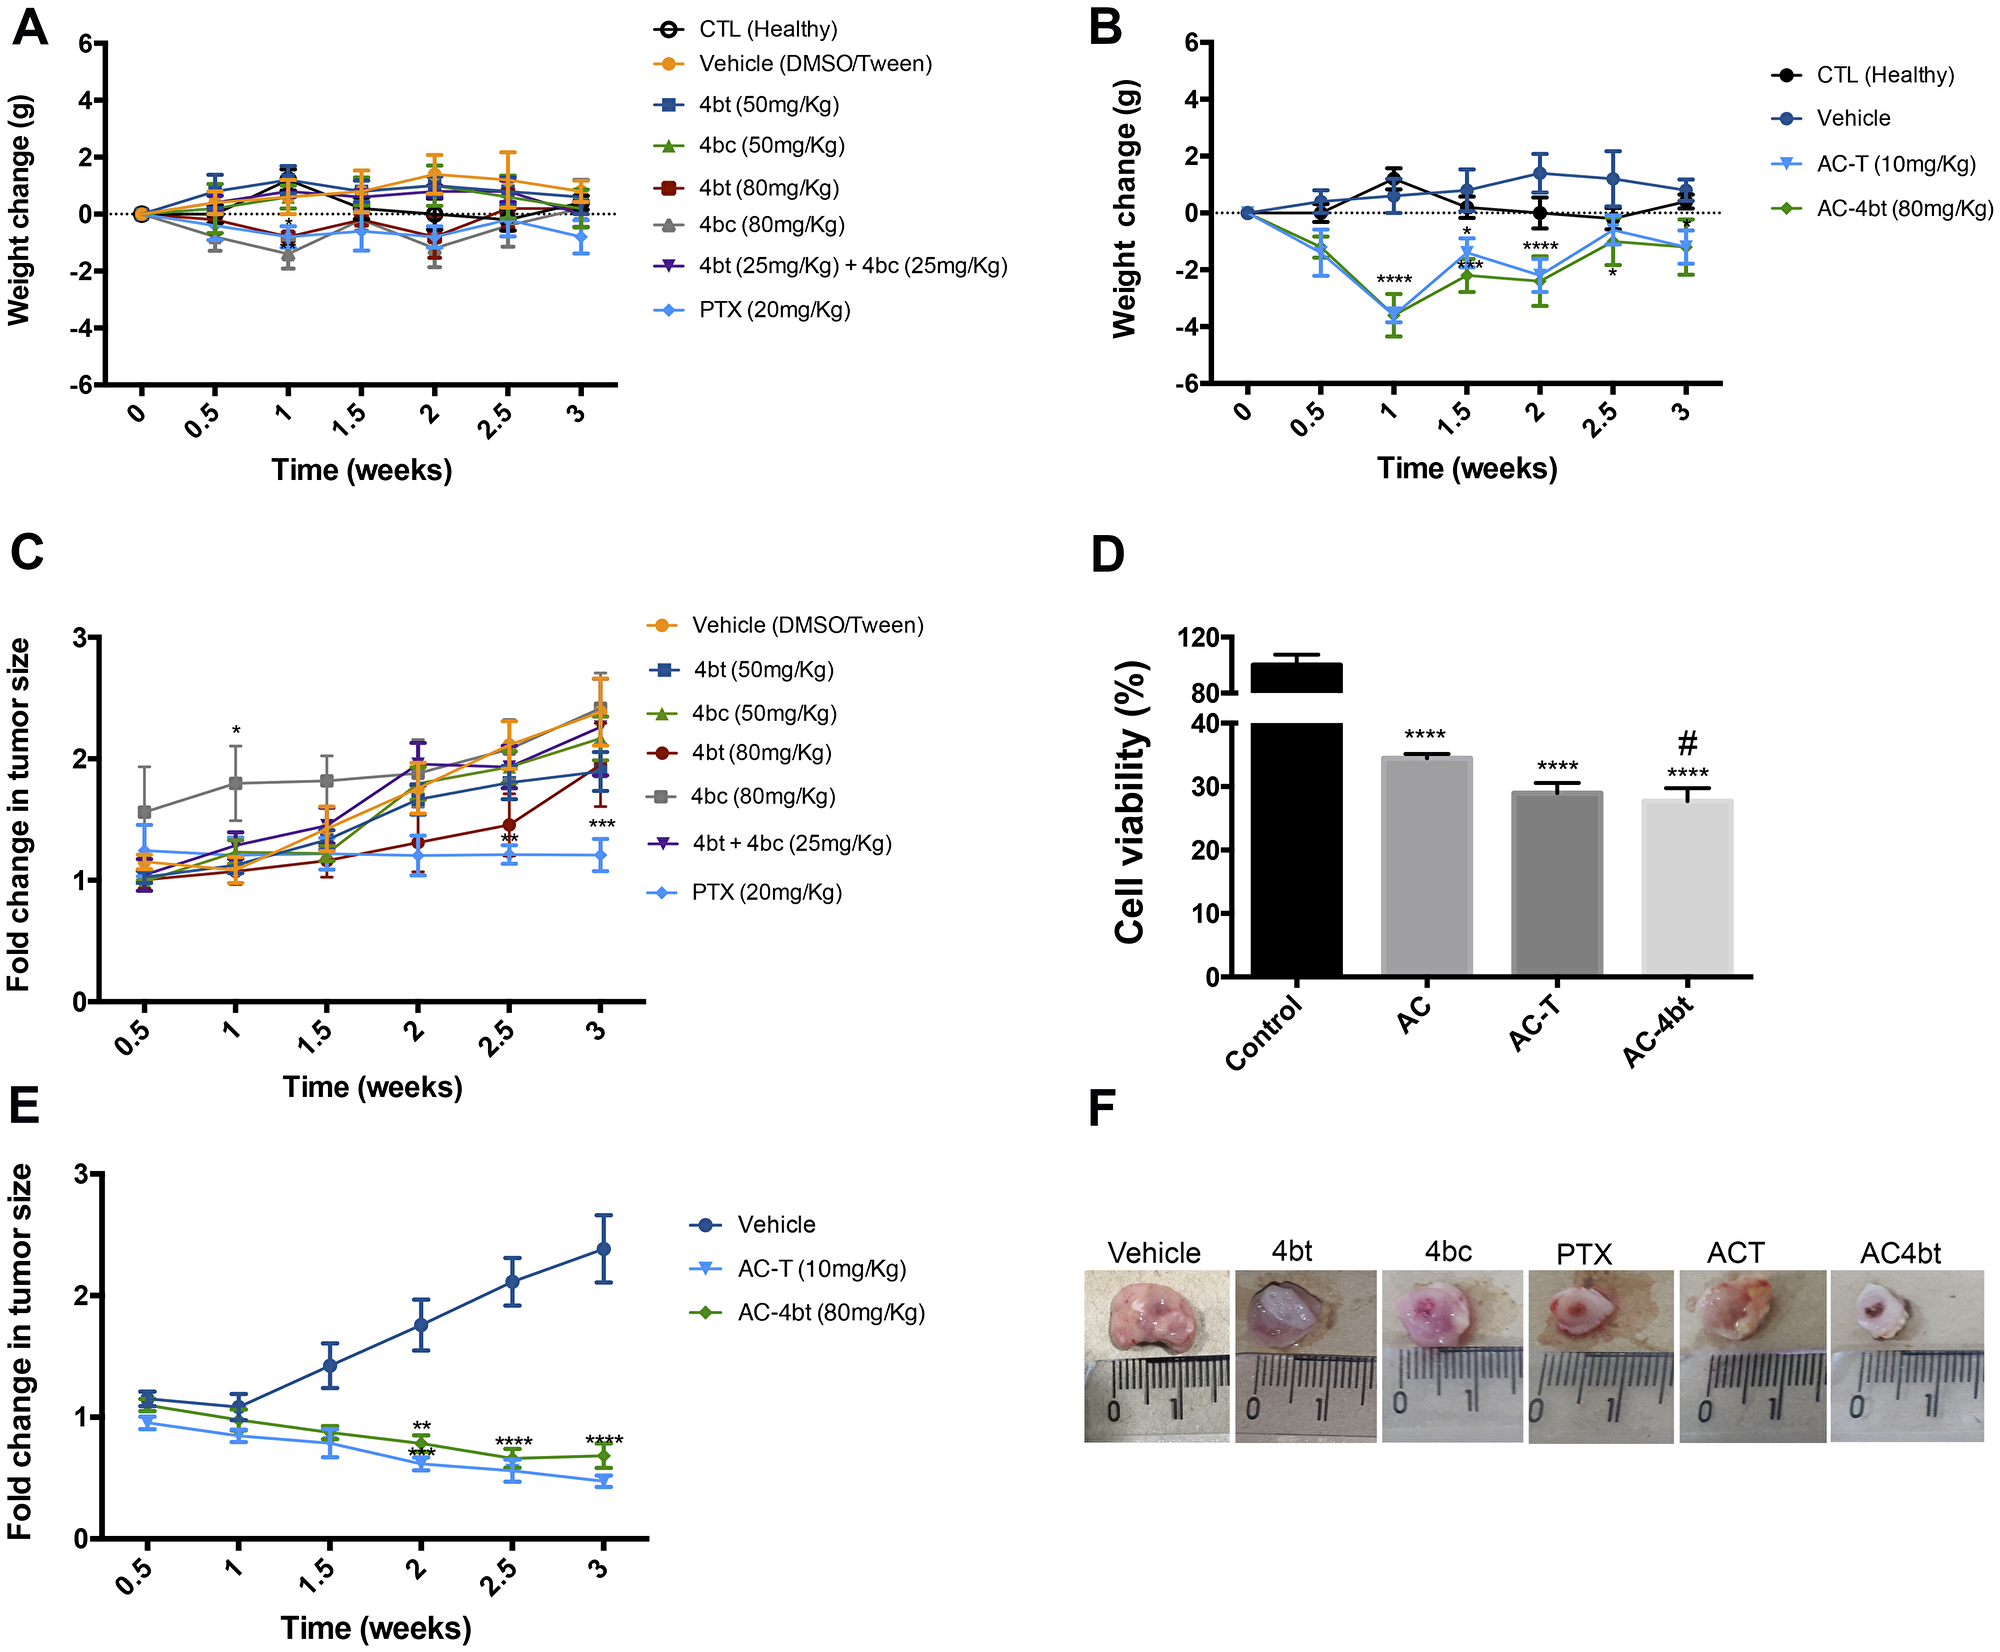 Body weight and tumor volume monitoring during monotherapy and drug combination therapy.